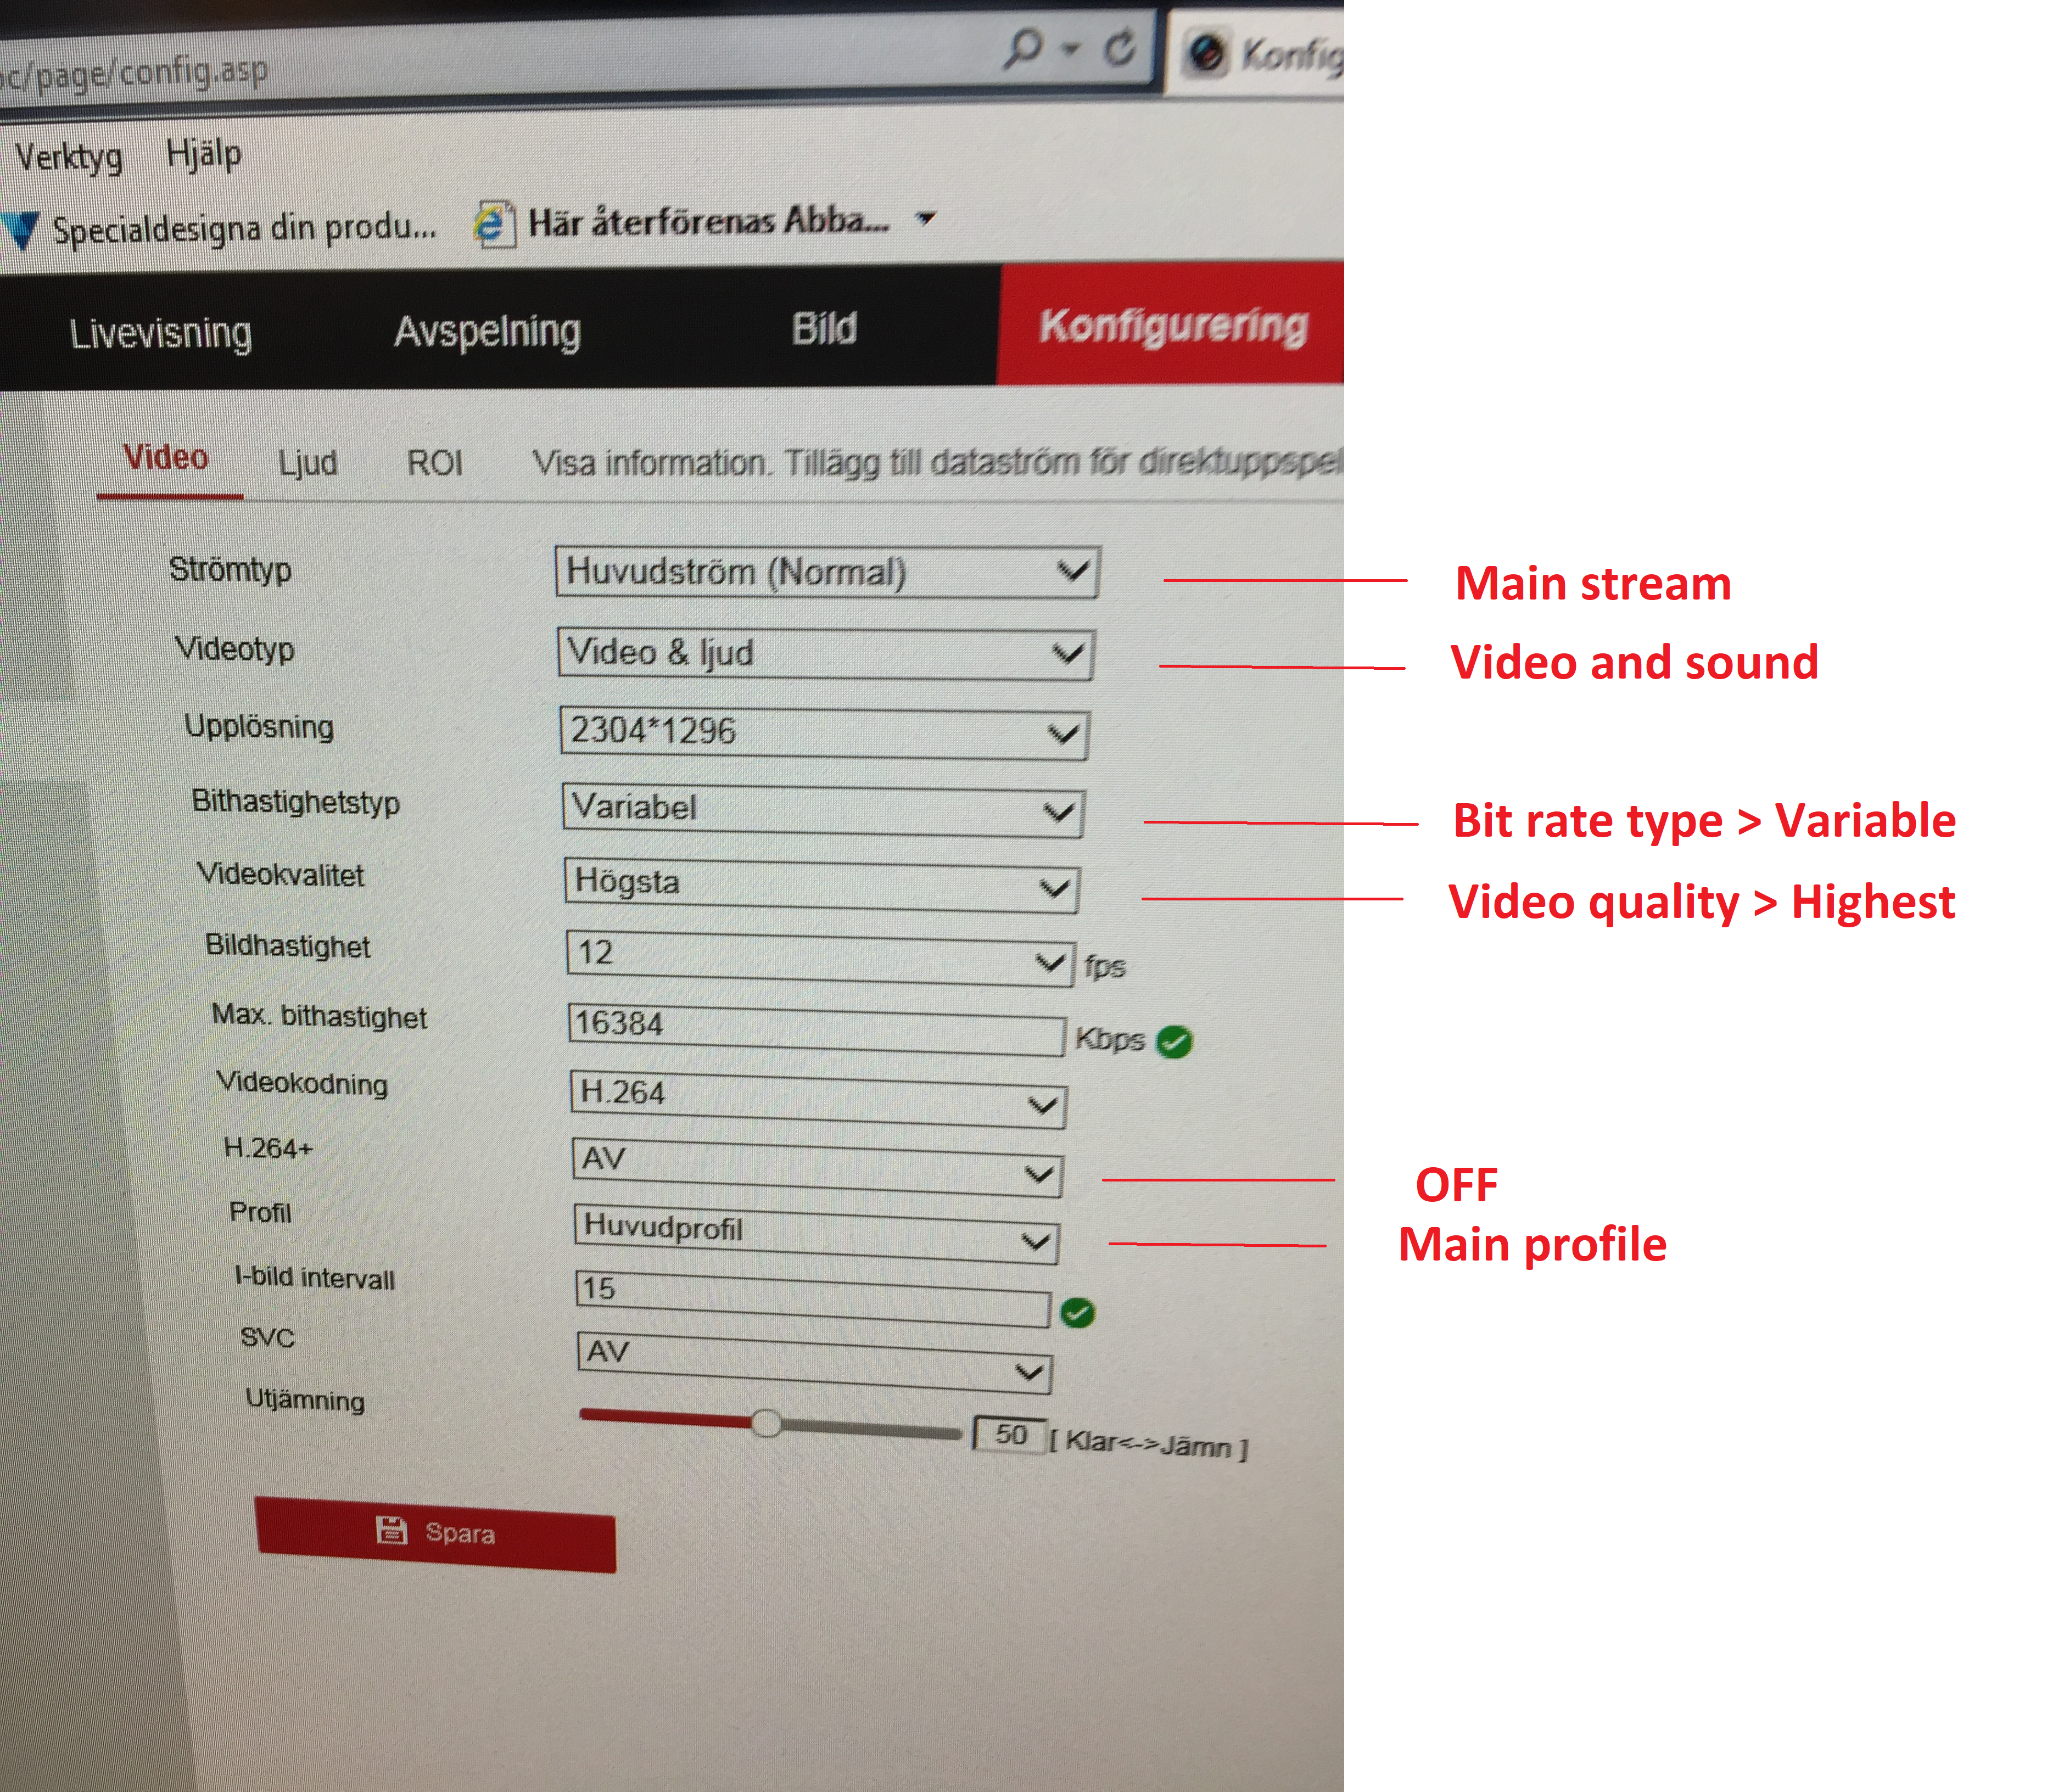 Hikvision camera losing its main stream settings (after